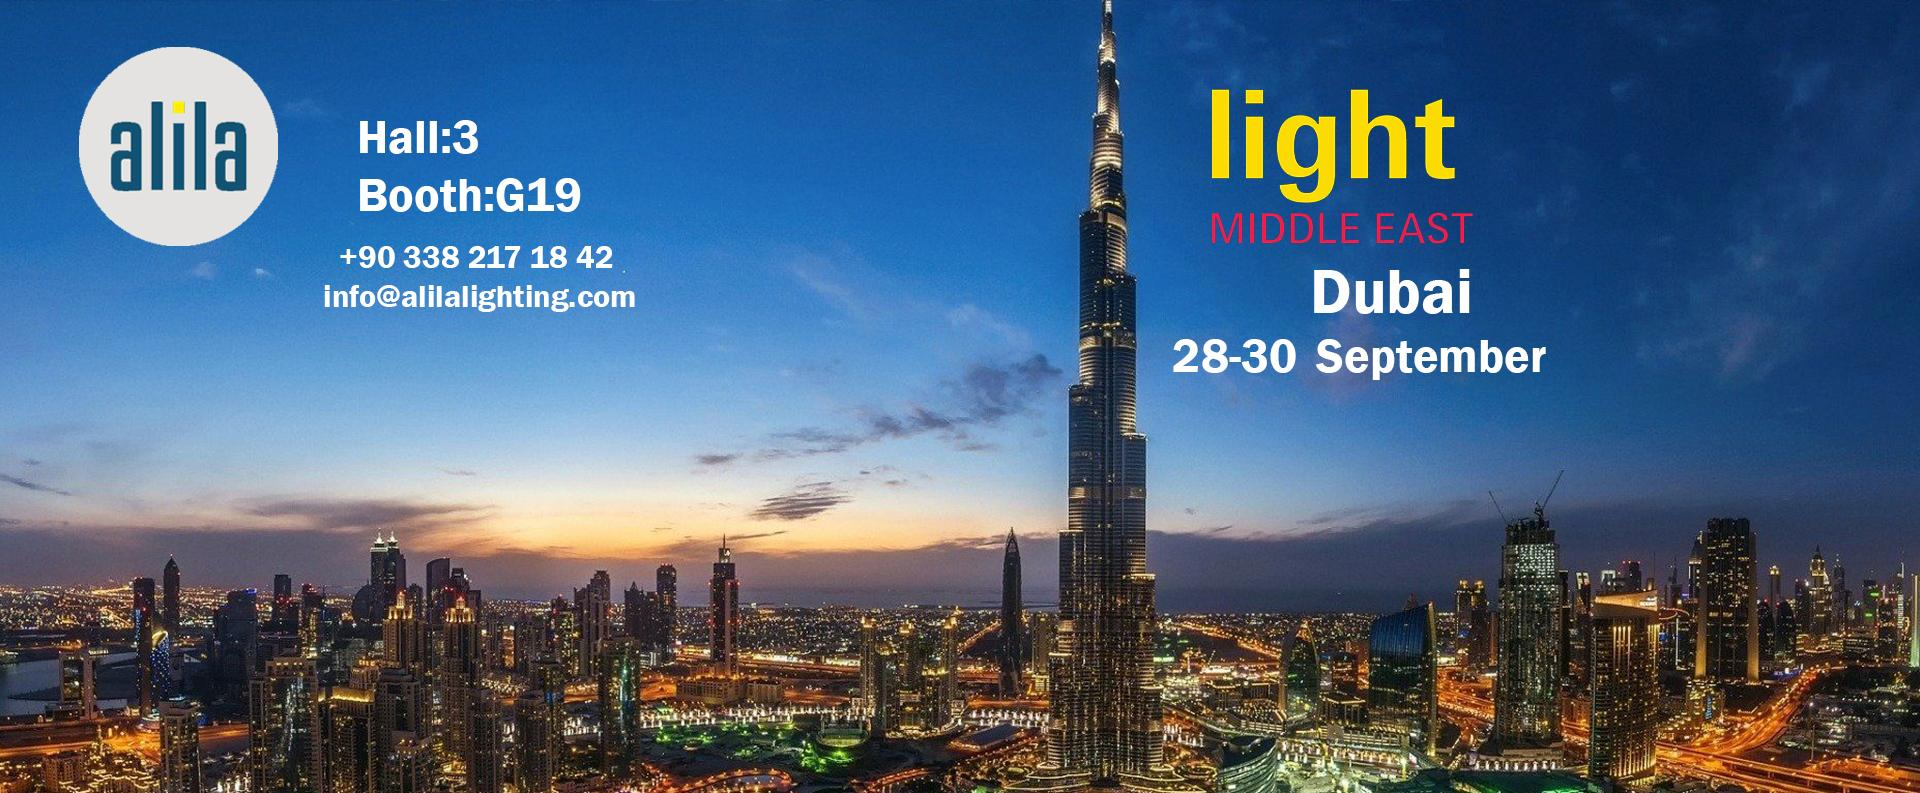 We are at the Middle East Fair in 28-30 September